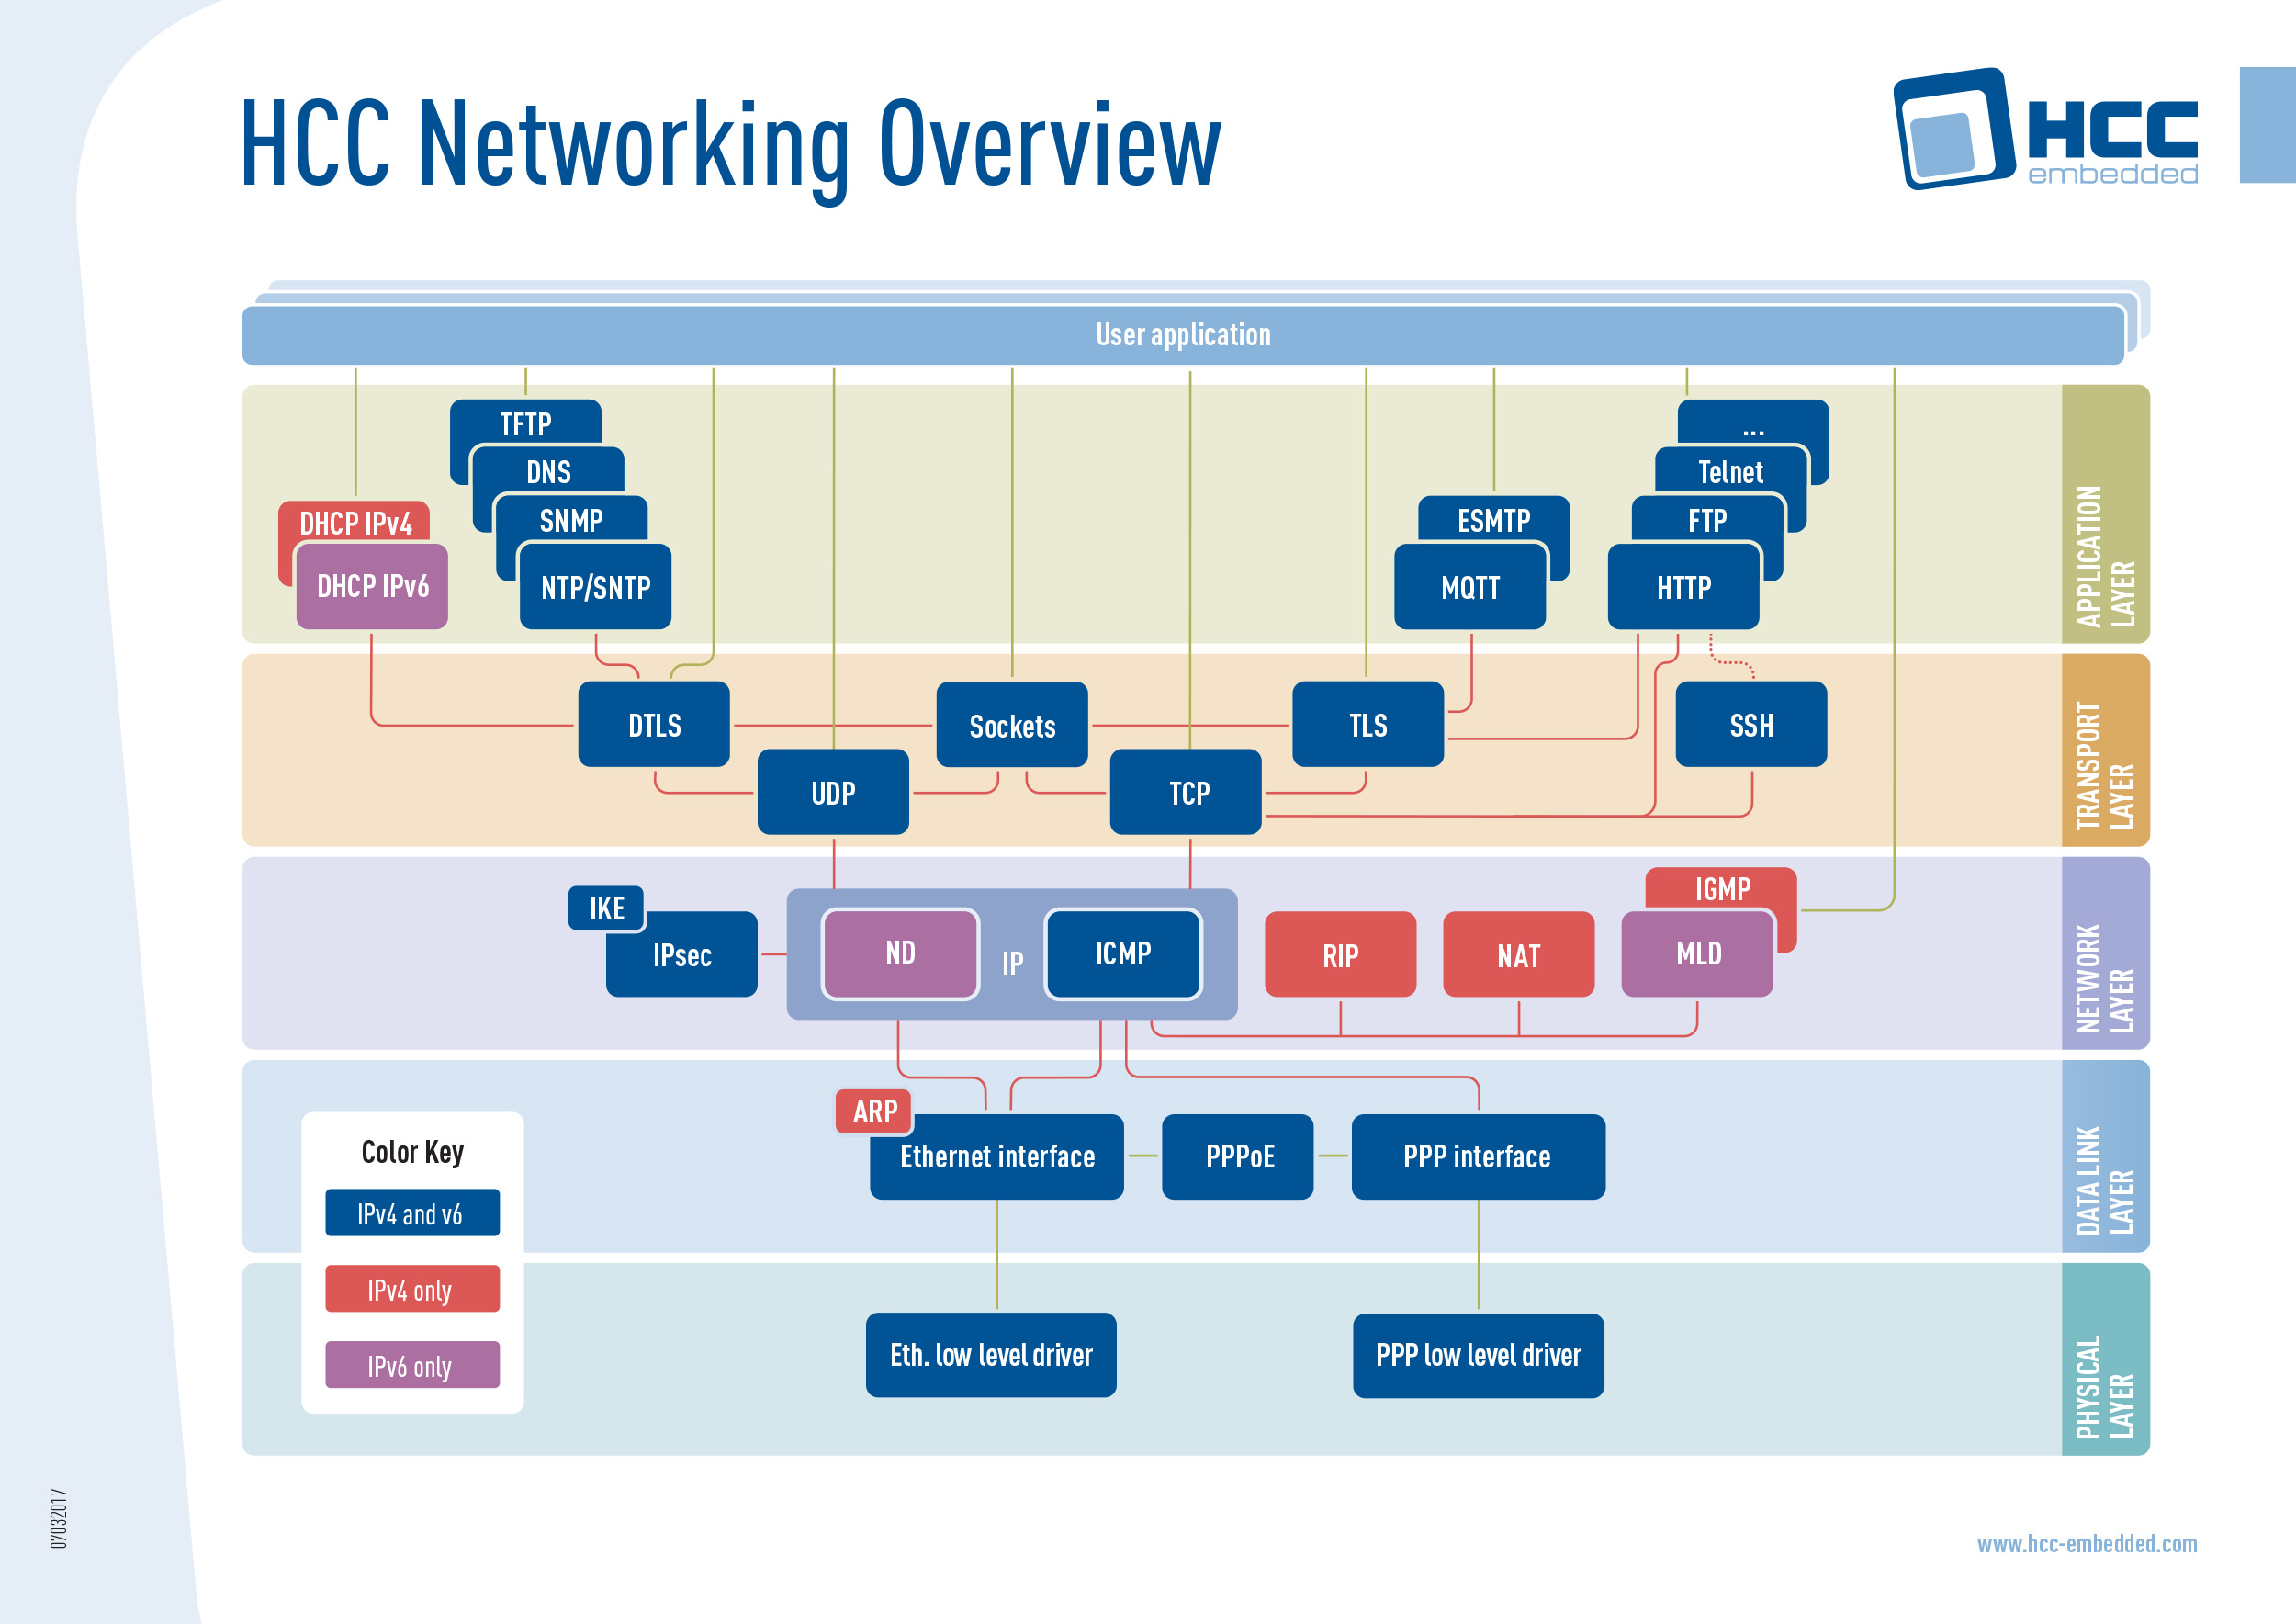 HCC Networking Overview